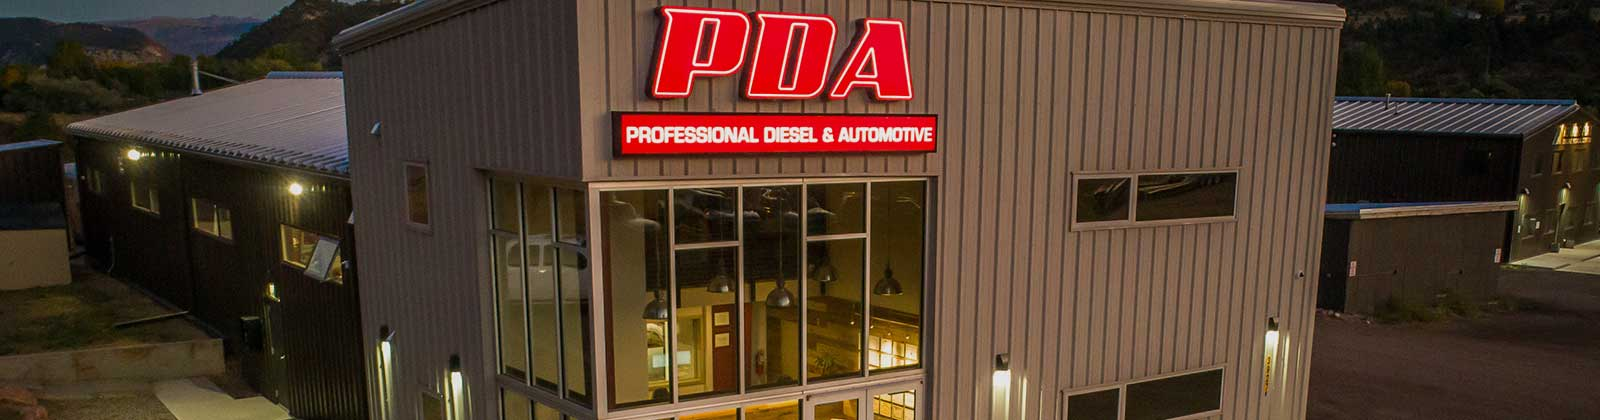 Professional Diesel & Automotive